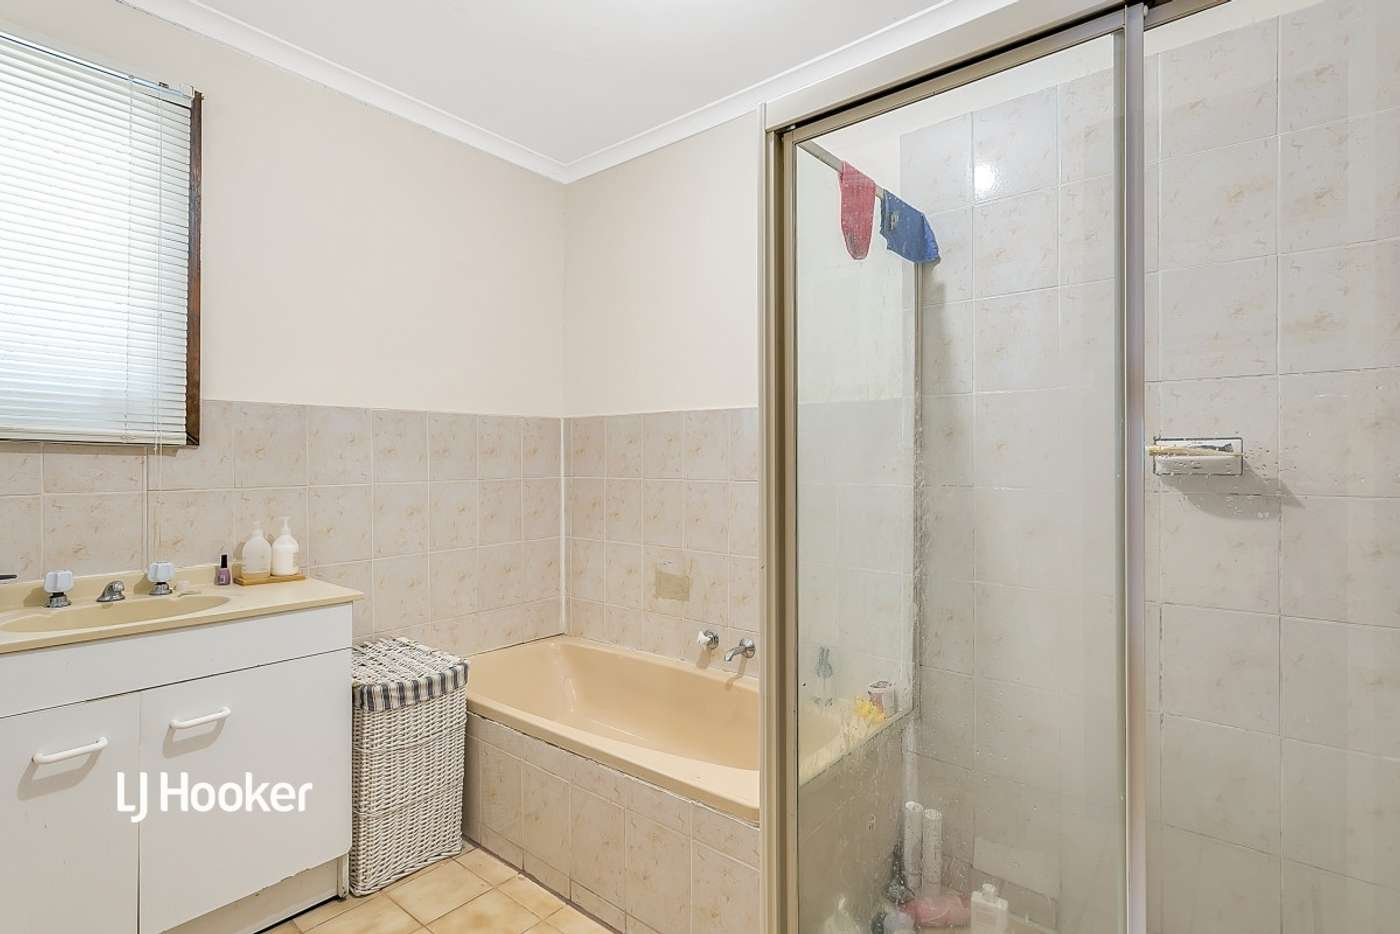 Sixth view of Homely house listing, 98 Heysen Avenue, Hope Valley SA 5090